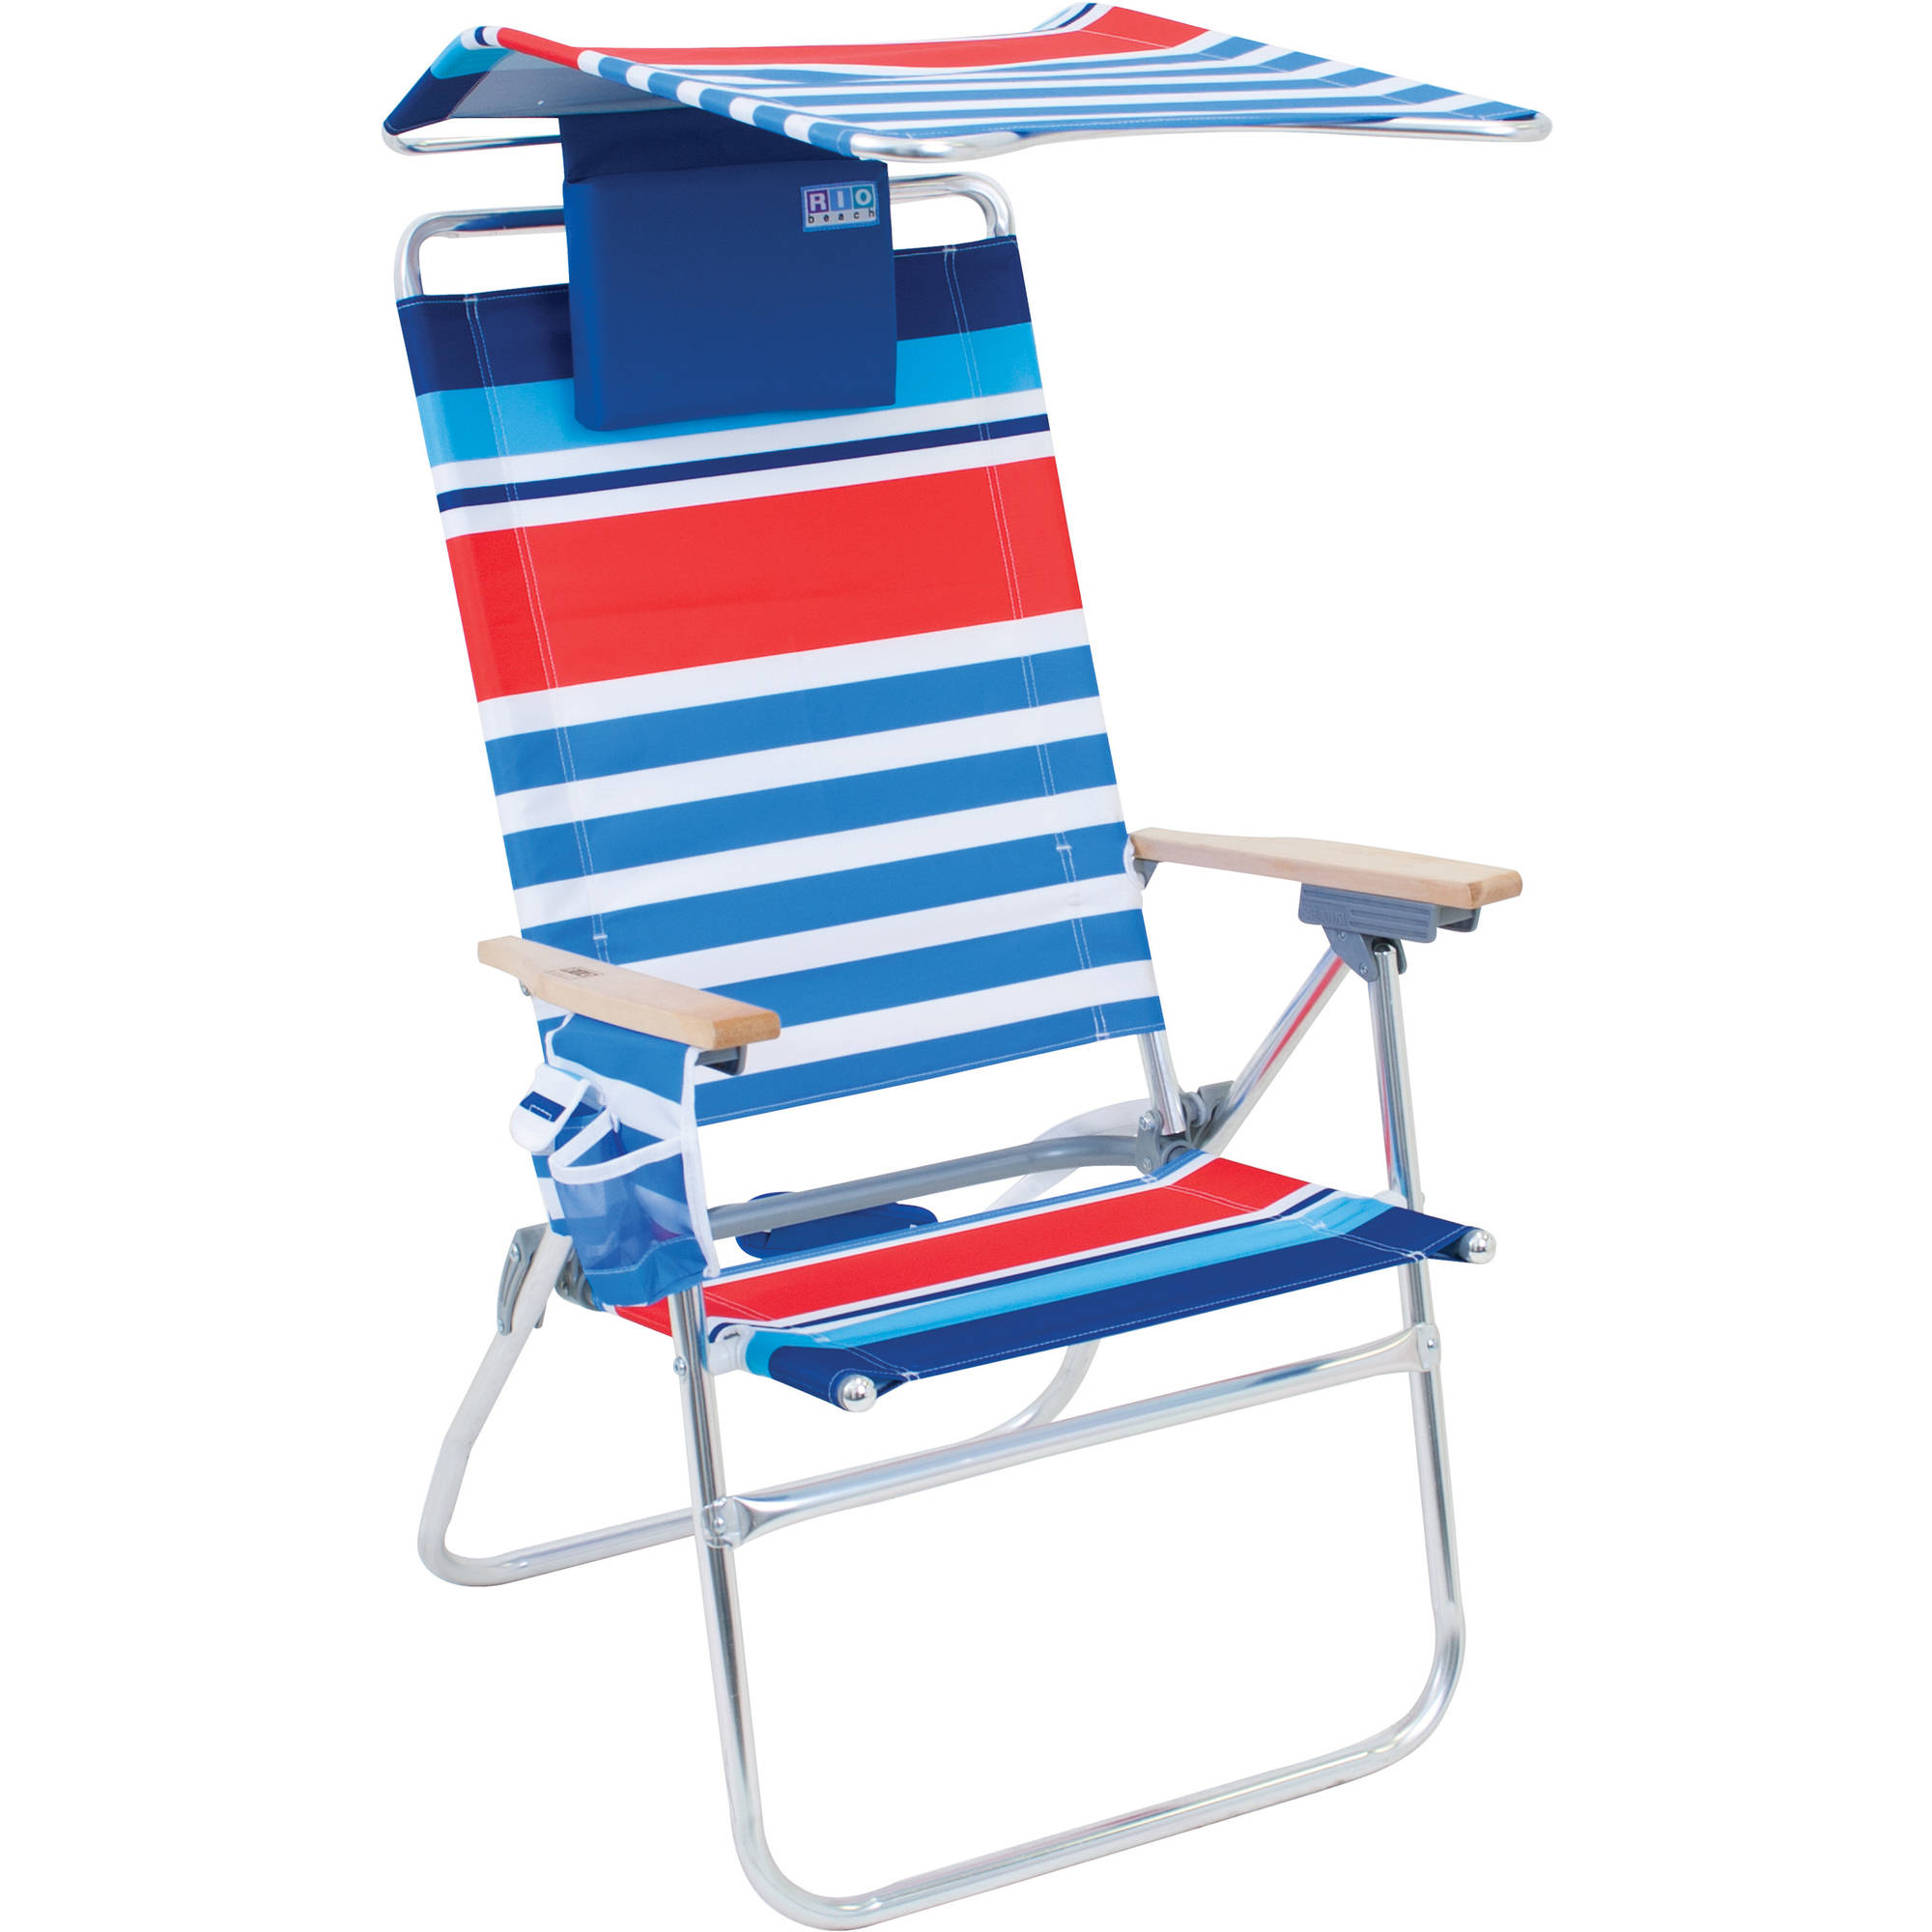 Boys Chair Rio Hi Boy Beach Chair With Shade Canopy Upf 50 Aluminum Frame With 17 Inch Seat Height